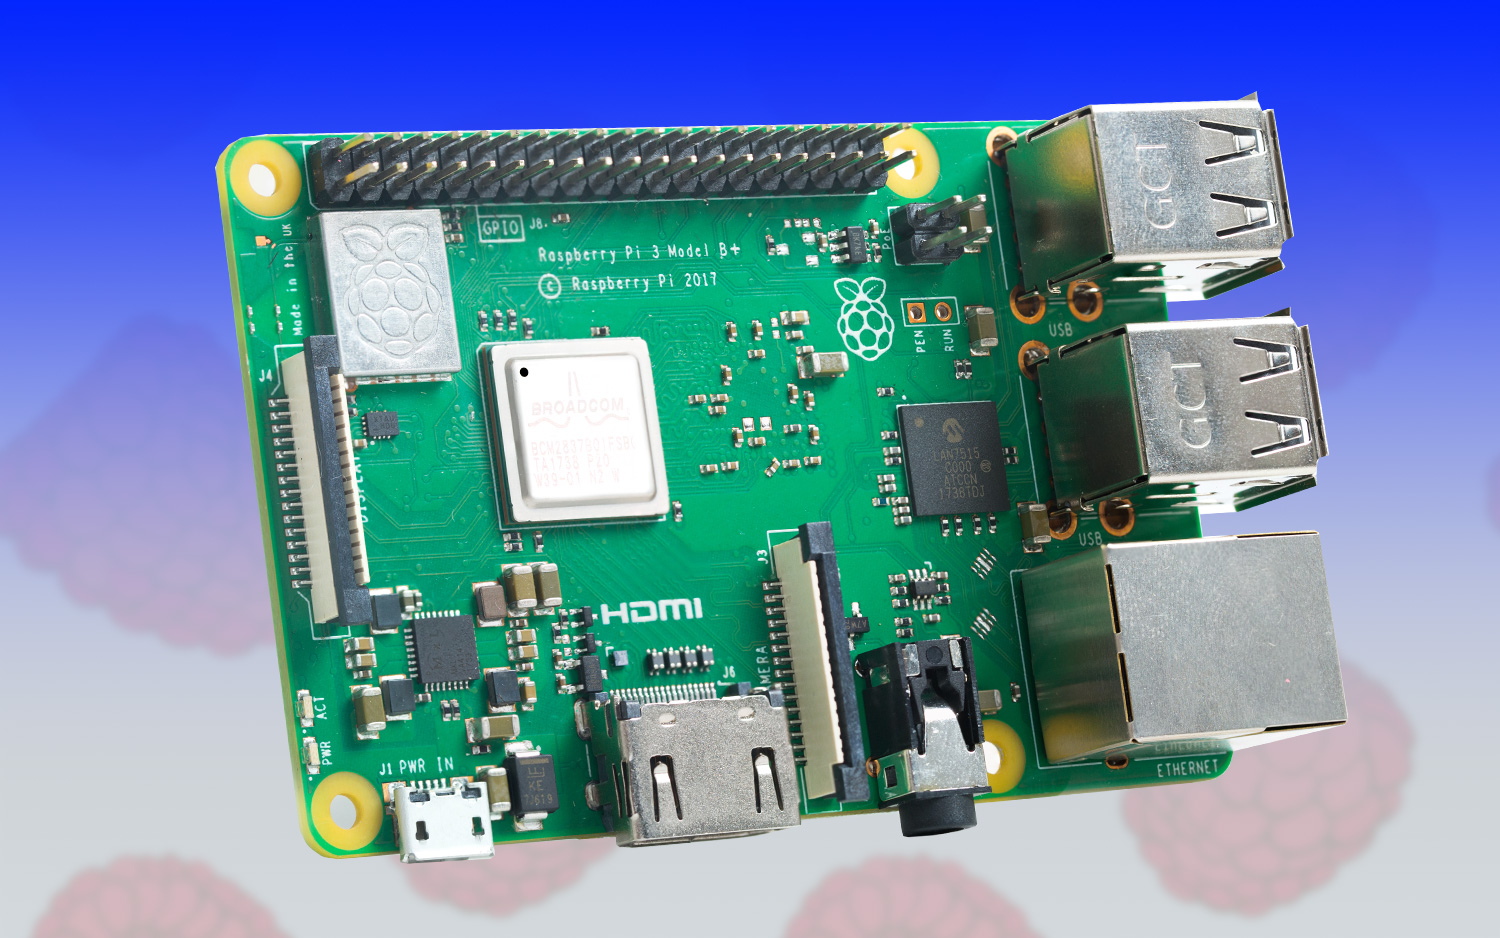 15 Great Uses for a Raspberry Pi | Tom's Guide